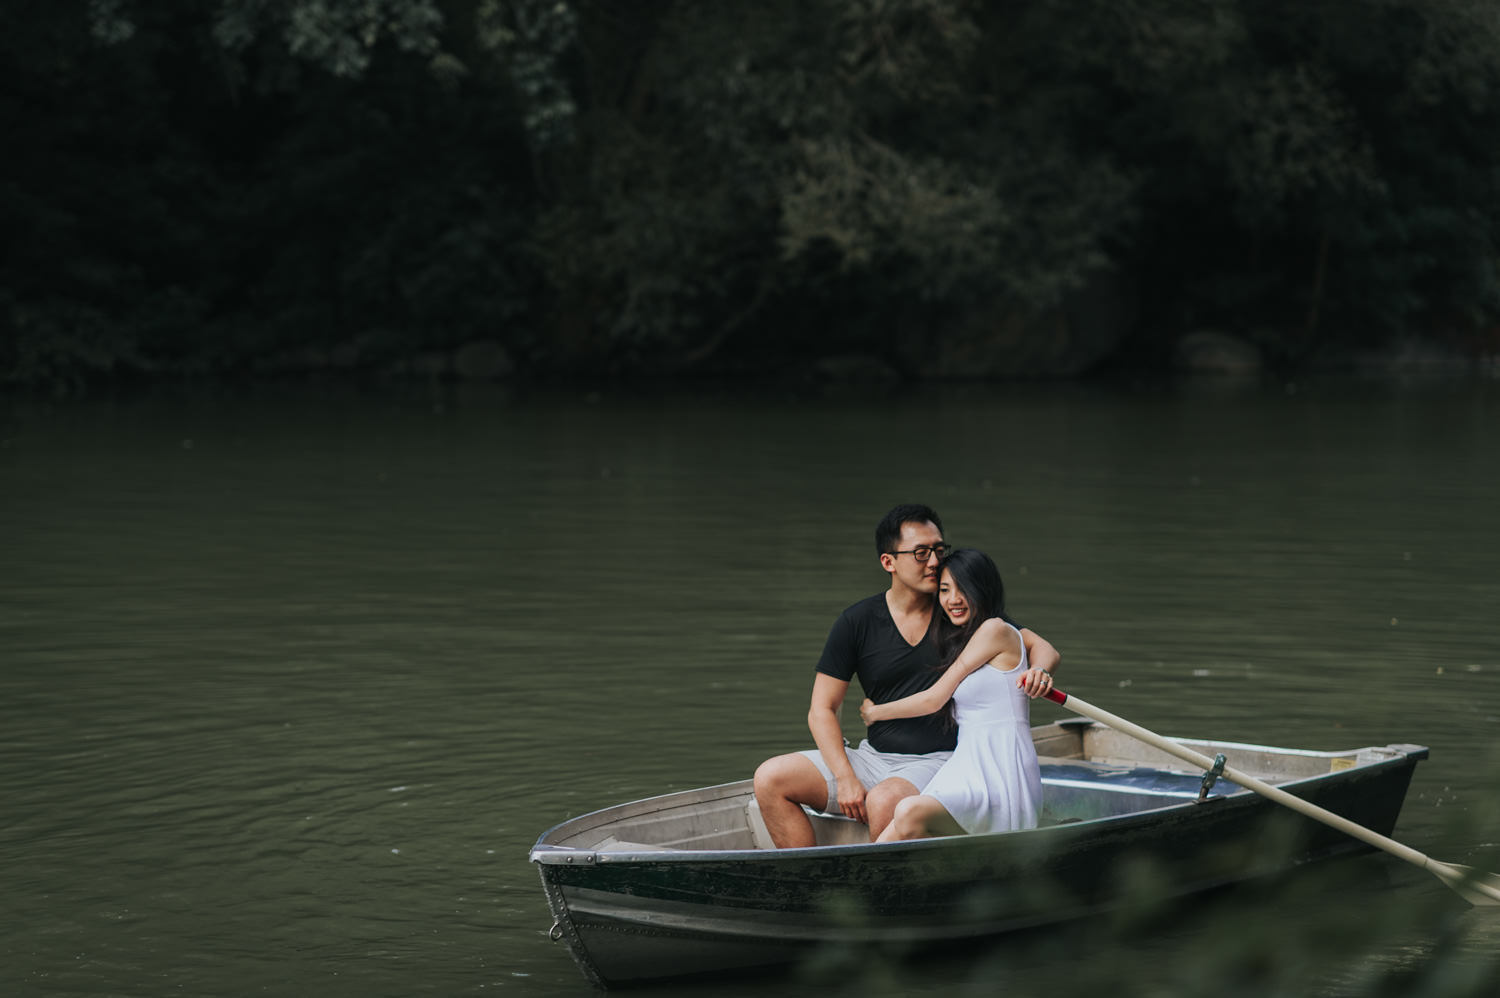 Rowboat engagement session at the New York Central Park